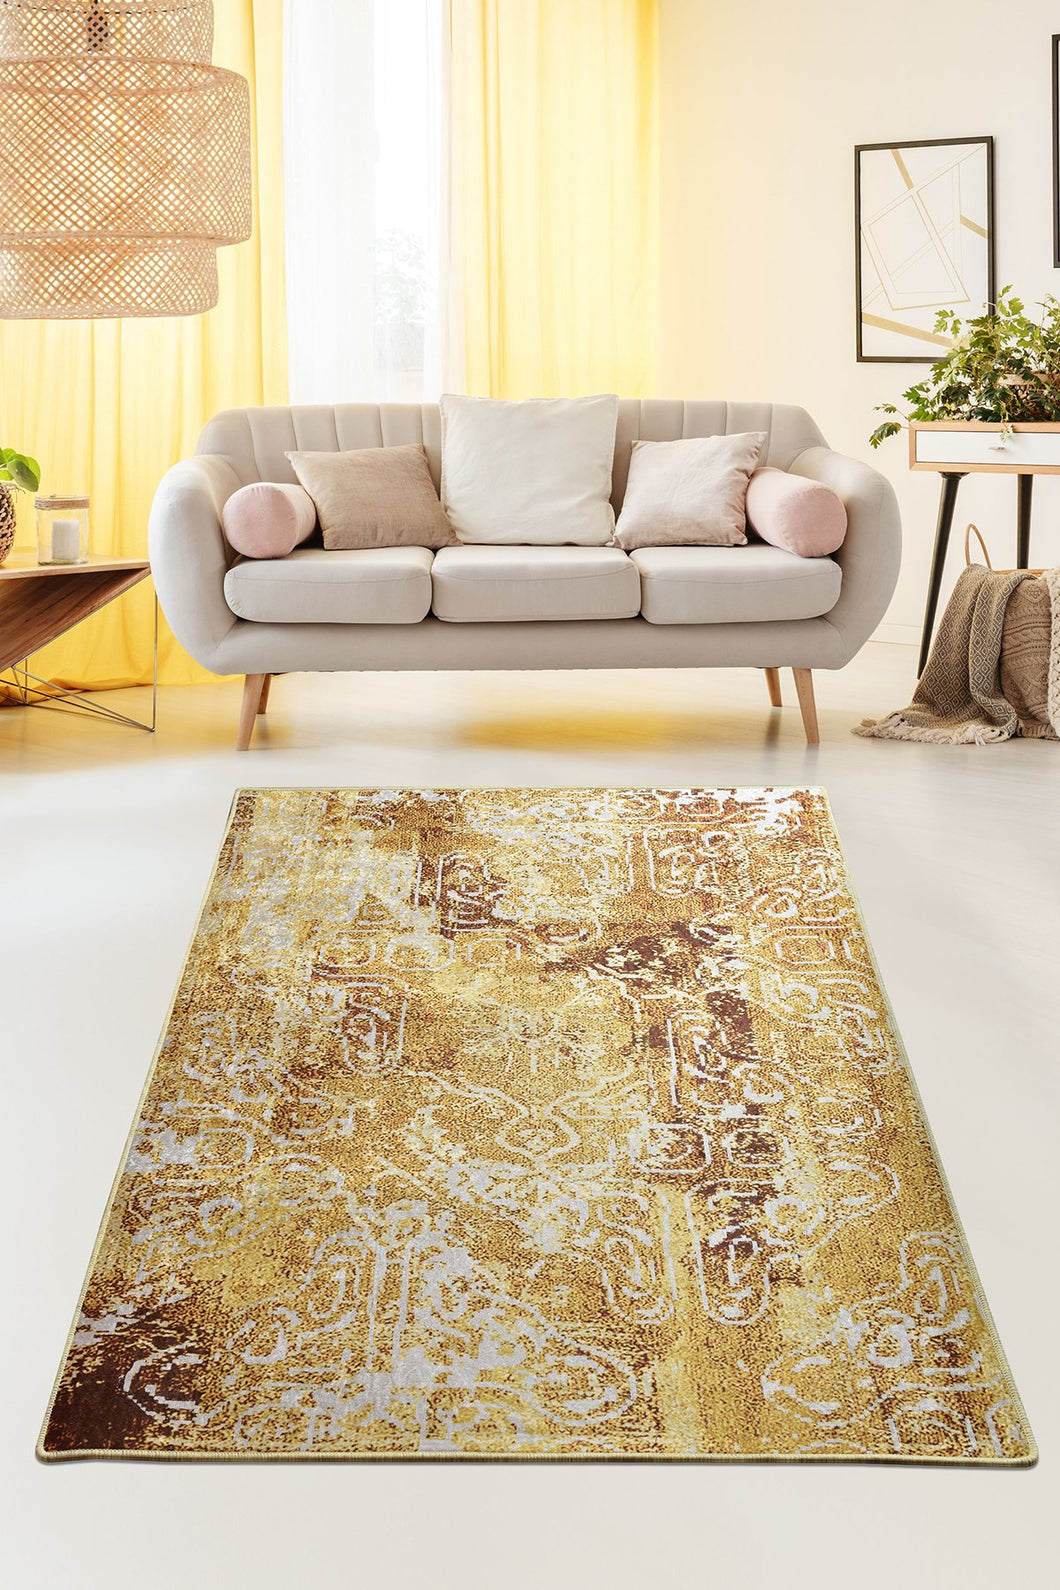 Antdecor Harmony Mustard Decorative Carpet 160X230 Cm